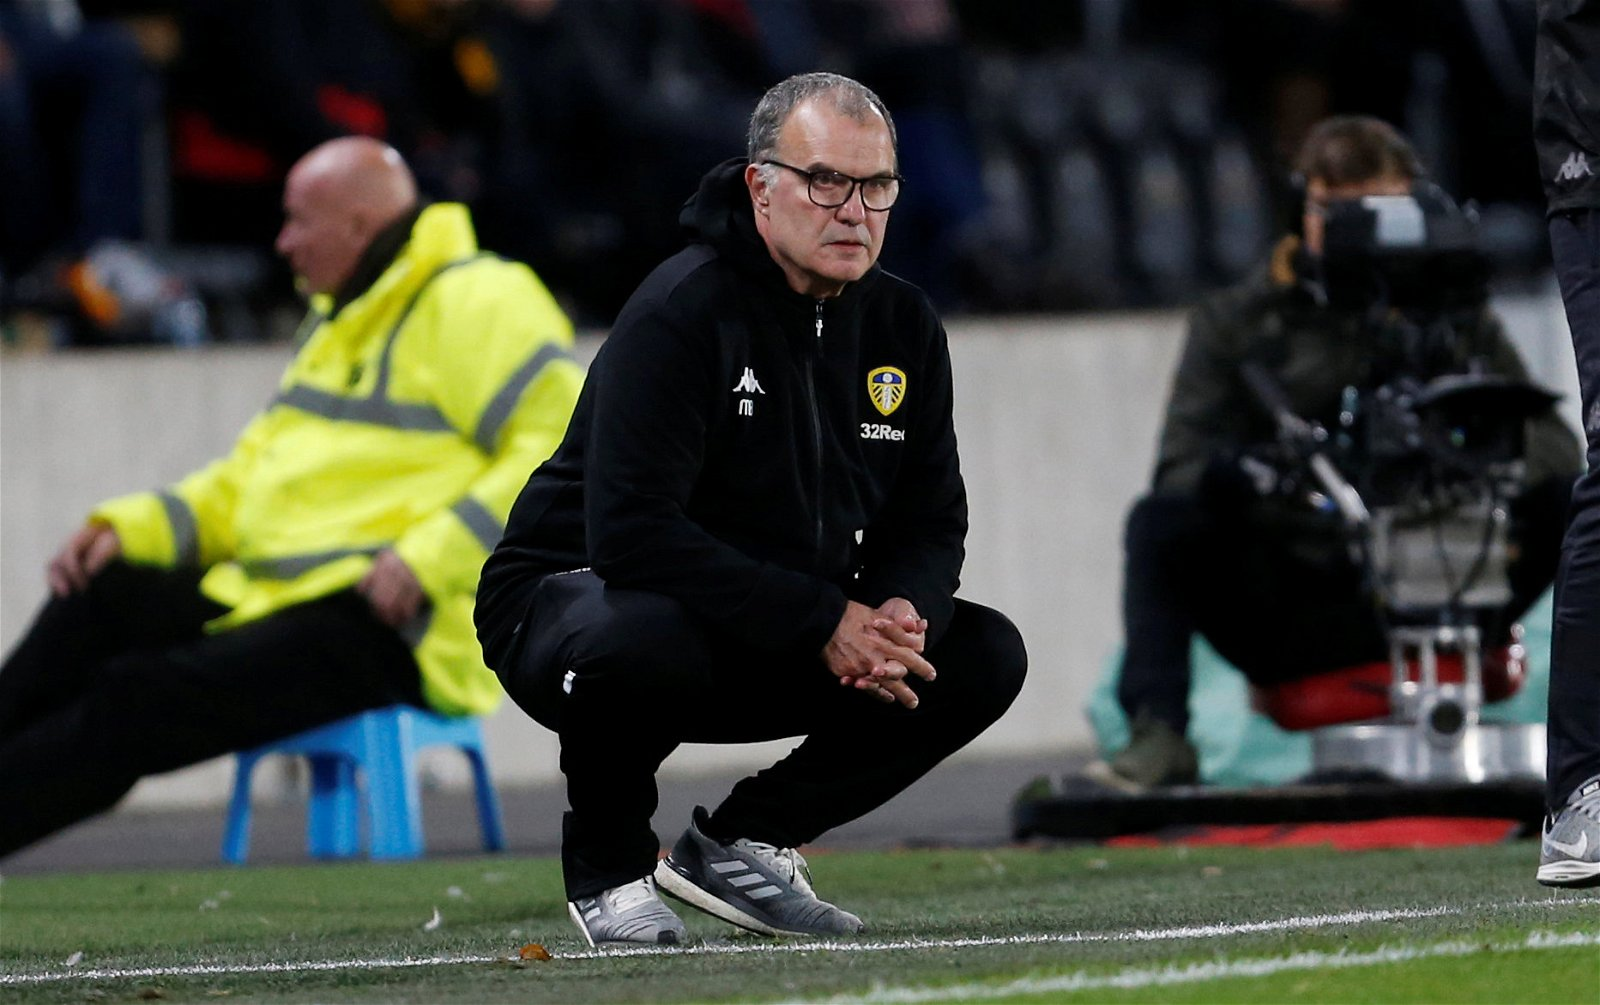 Leeds United manager Marcelo Bielsa crouches down during win against Hull City - Leeds, Norwich, Bristol City, Coventry: Who else makes up the perfect Premier League?